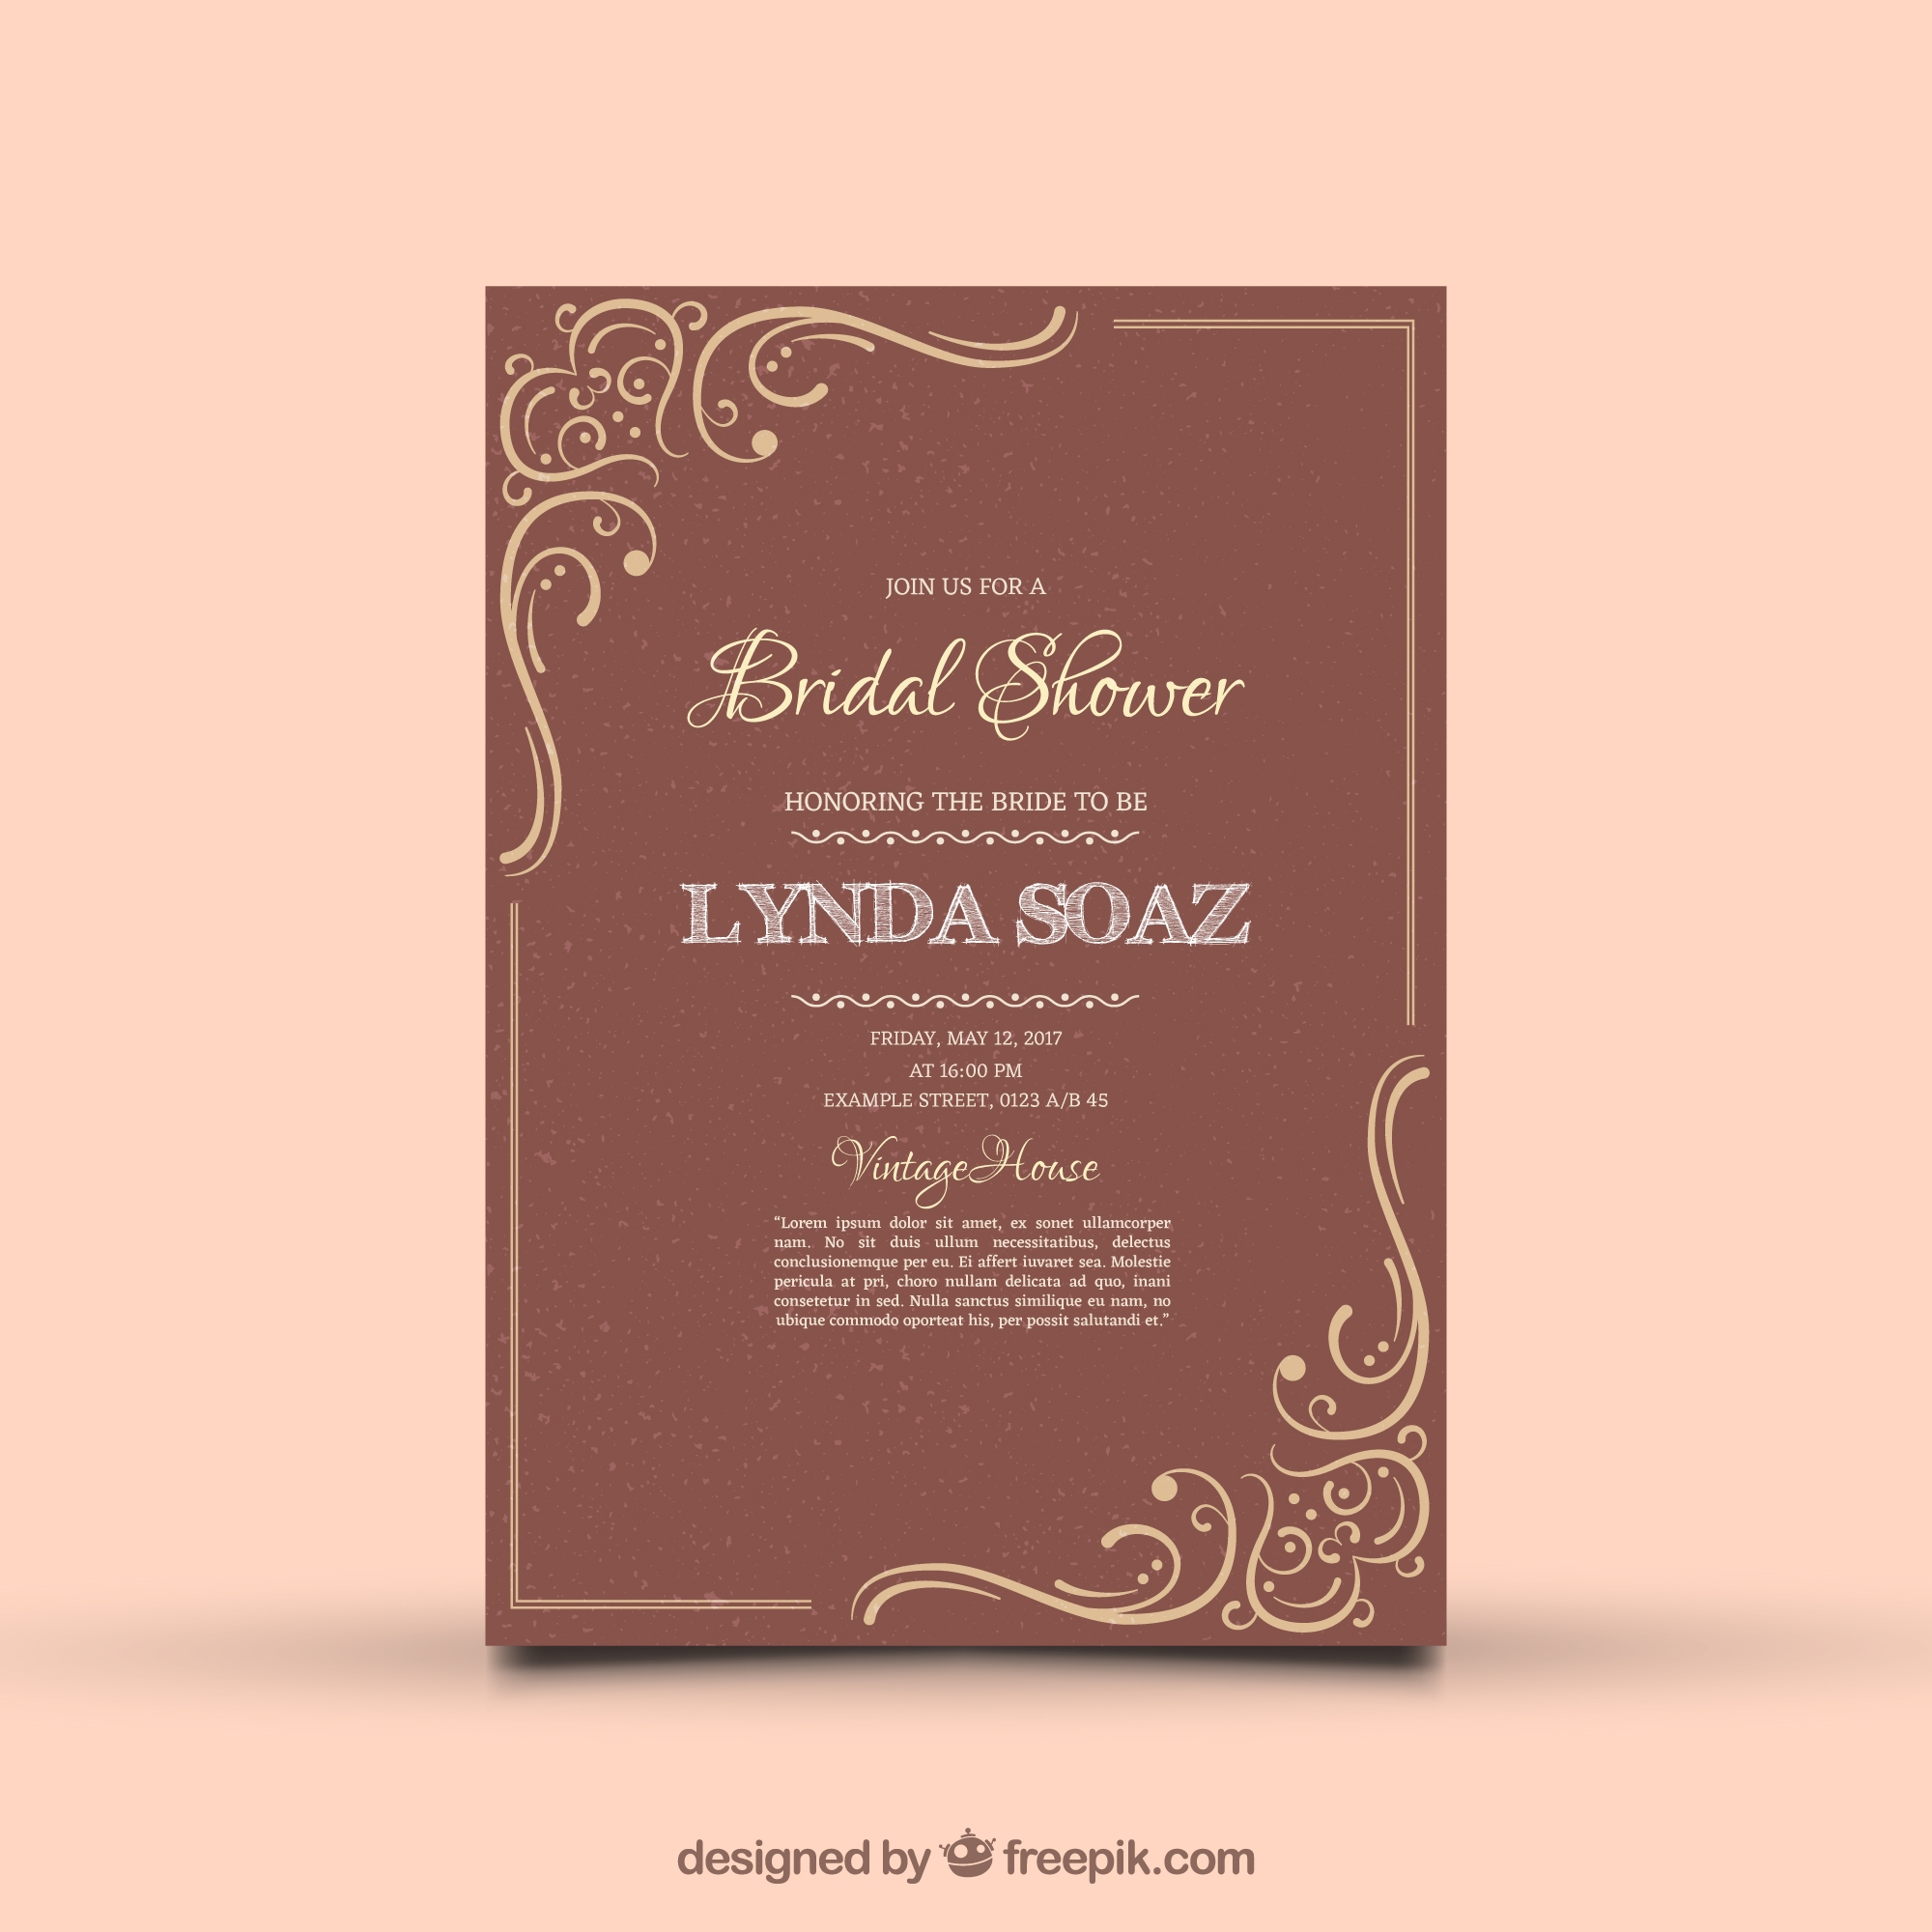 7+ Best Bridal Shower Invitation Designs